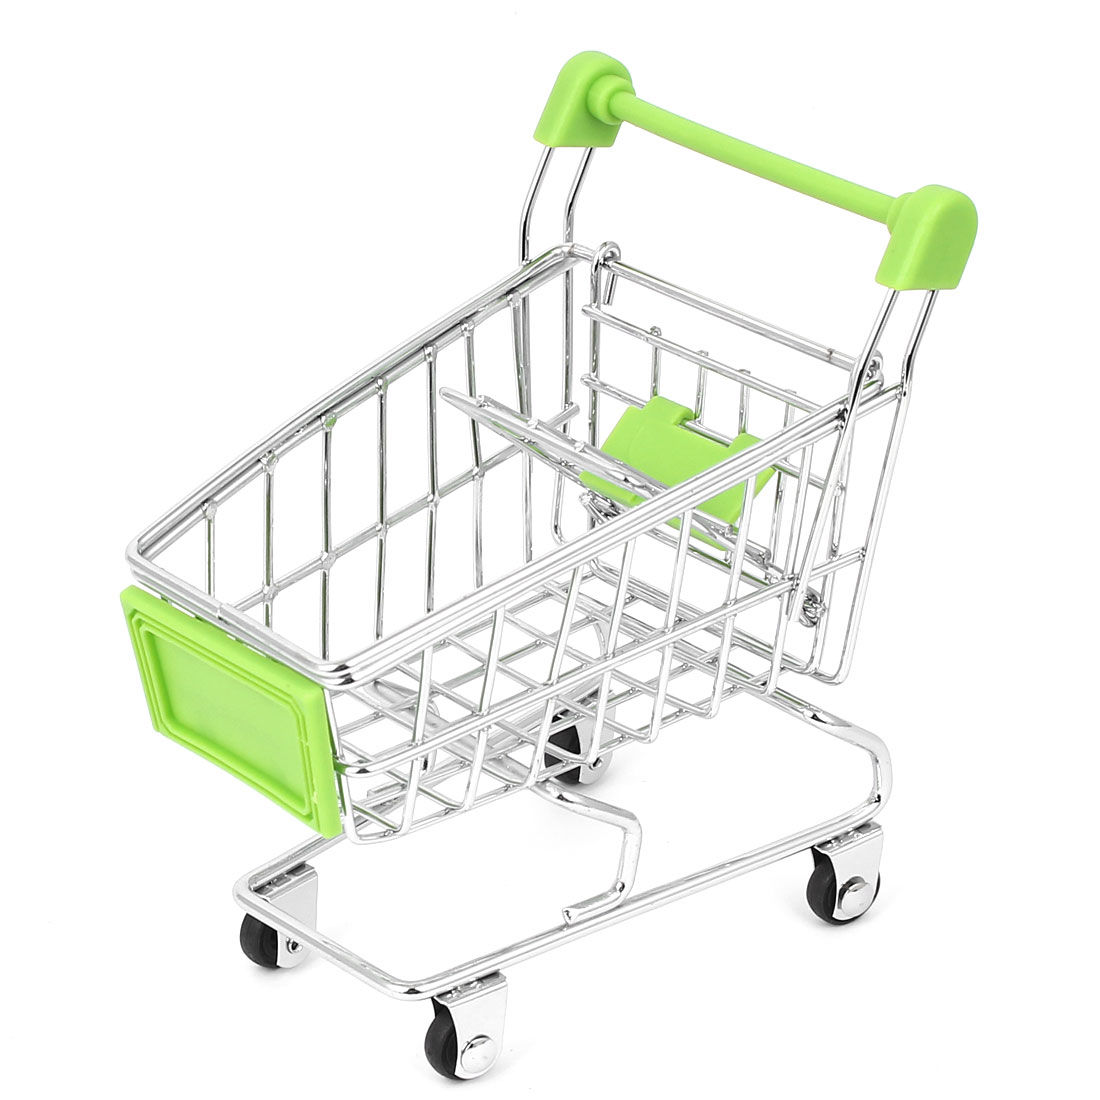 Mini Supermarket Shopping Hand Trolly Cart Model Toy Storage Container Green